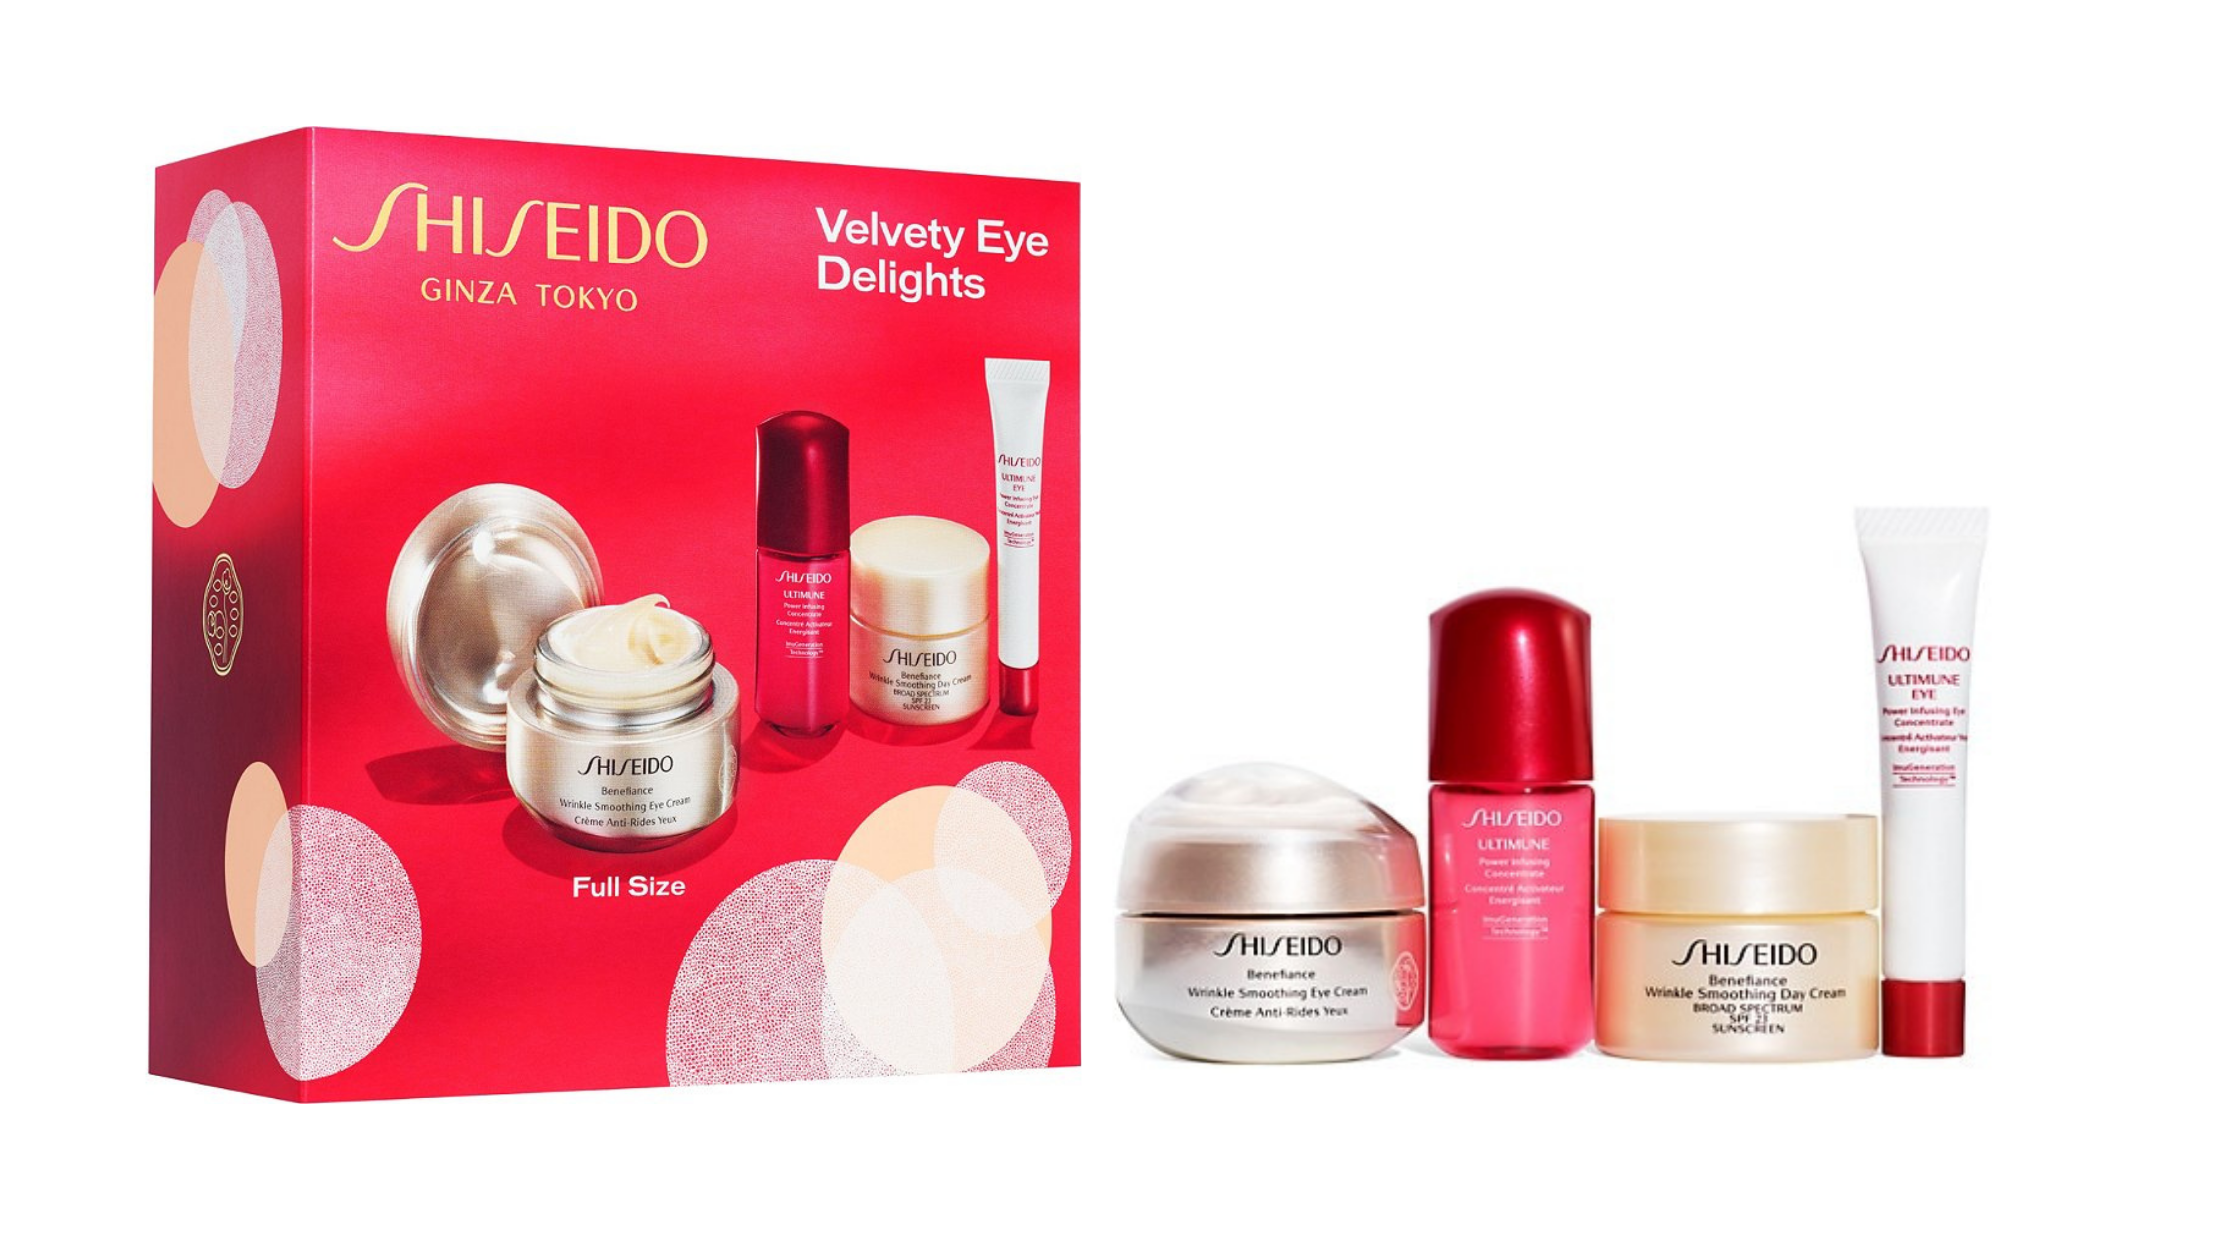 The Best Gifts From Ulta Beauty For the Holidays